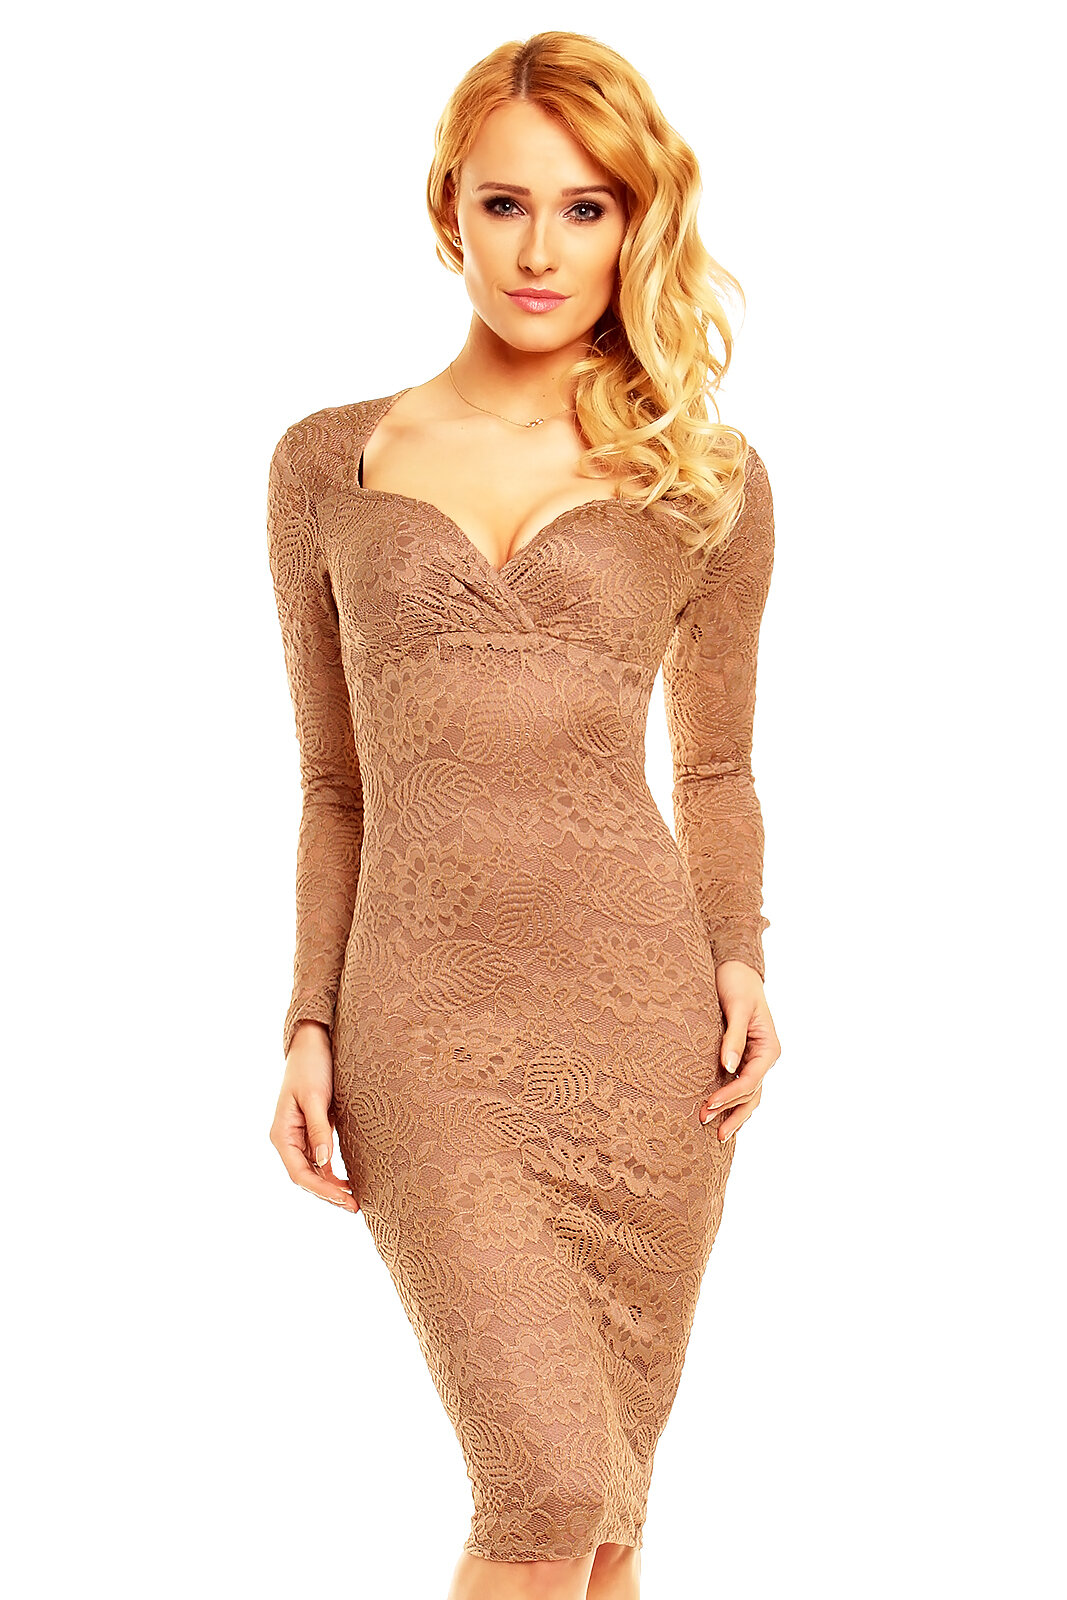 HS-328 MAYAADI SPITZE SEXY COCKTAILKLEID MINIKLEID PARTY KLEID SPITZEKLEID